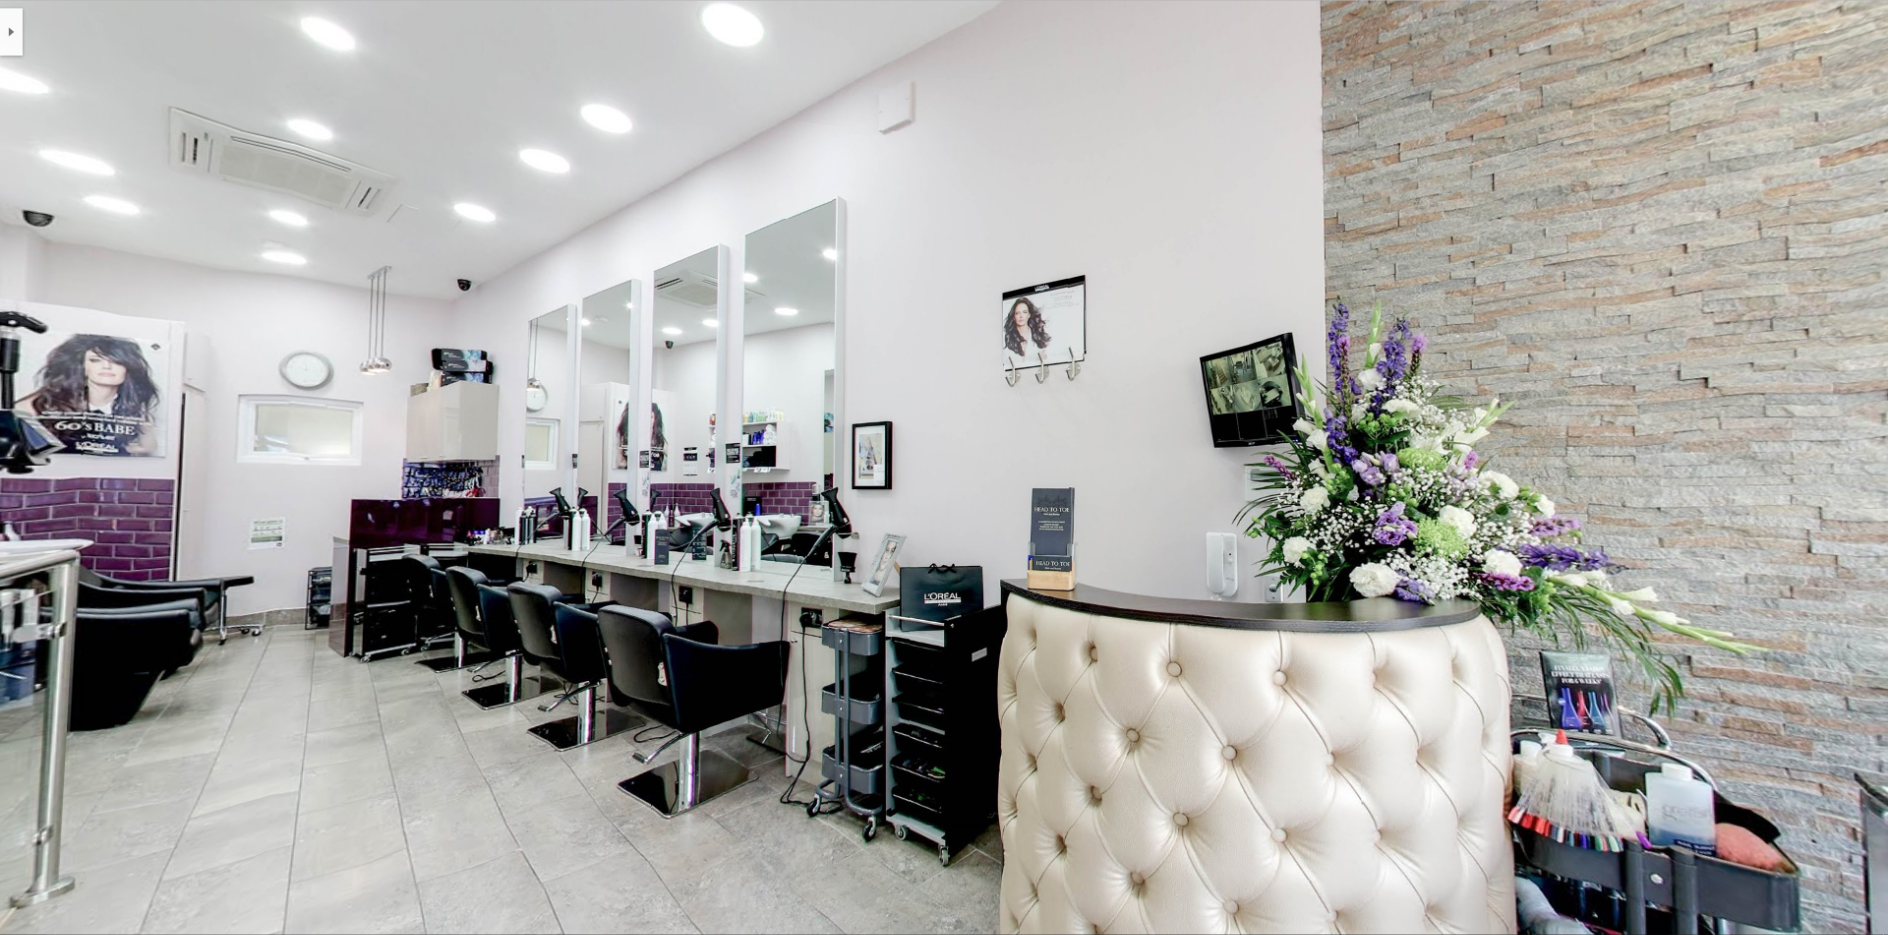 Head To Toe Day Spa And Salon